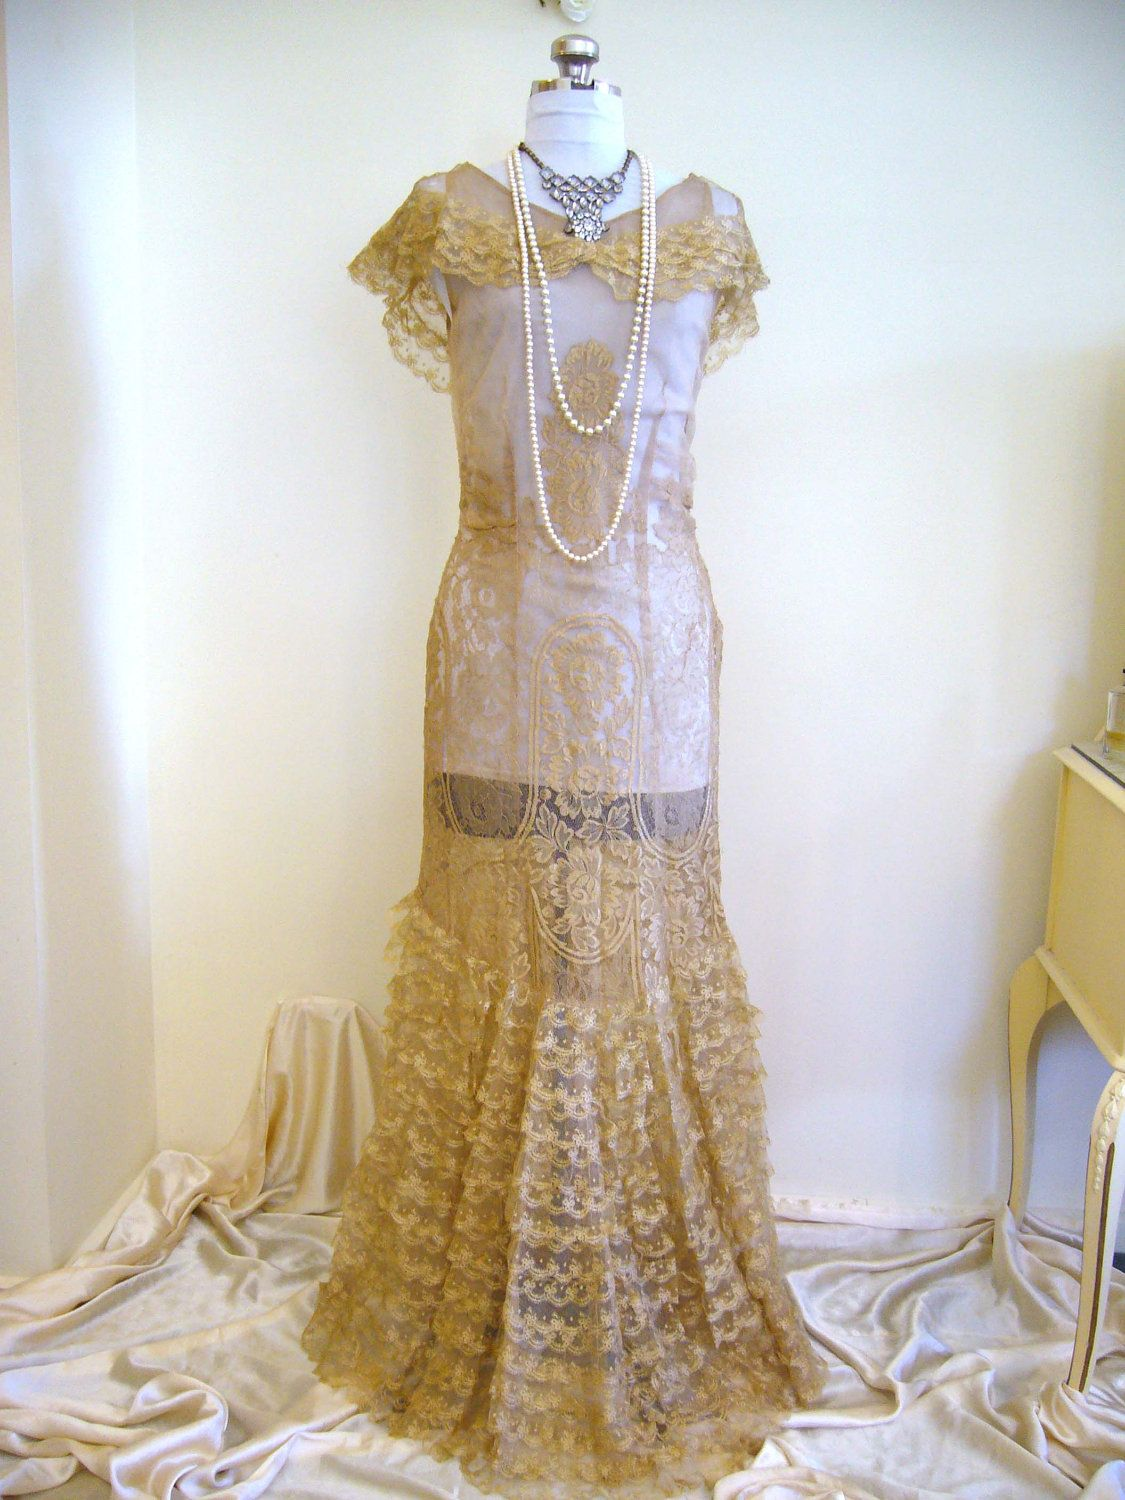 1920 lace dress  INCREDIBLE Rare Late s Early s French Lame Lace Ornate